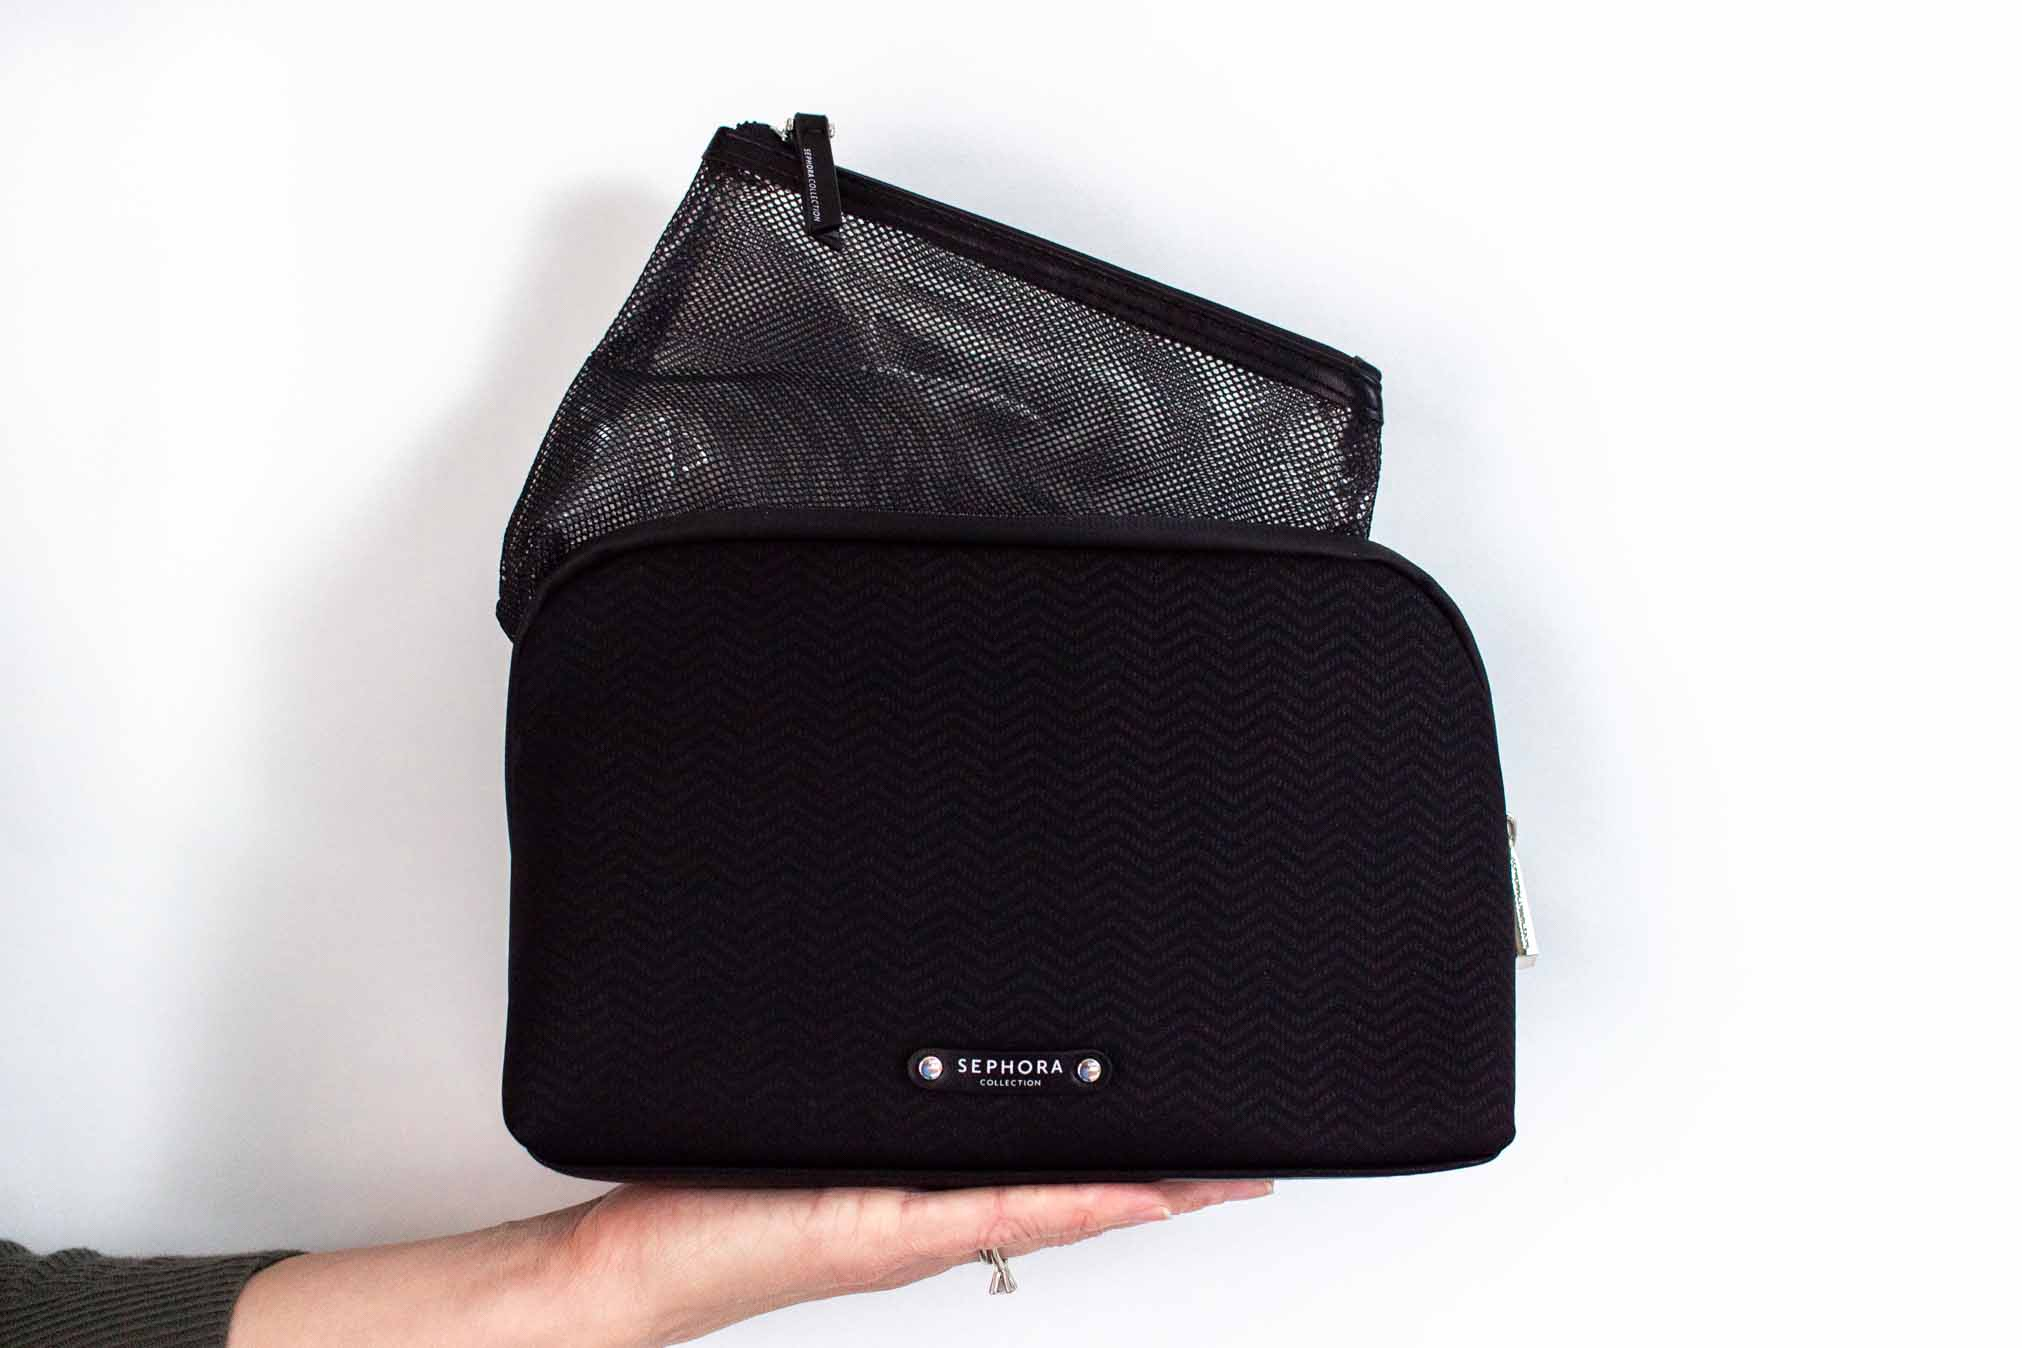 Sephora Nested Organizer Duo: What I like about this nested set is that it's big enough to hold all of my everyday products + it has a separate bag. I like to have certain things with certain things, so this is really perfect.